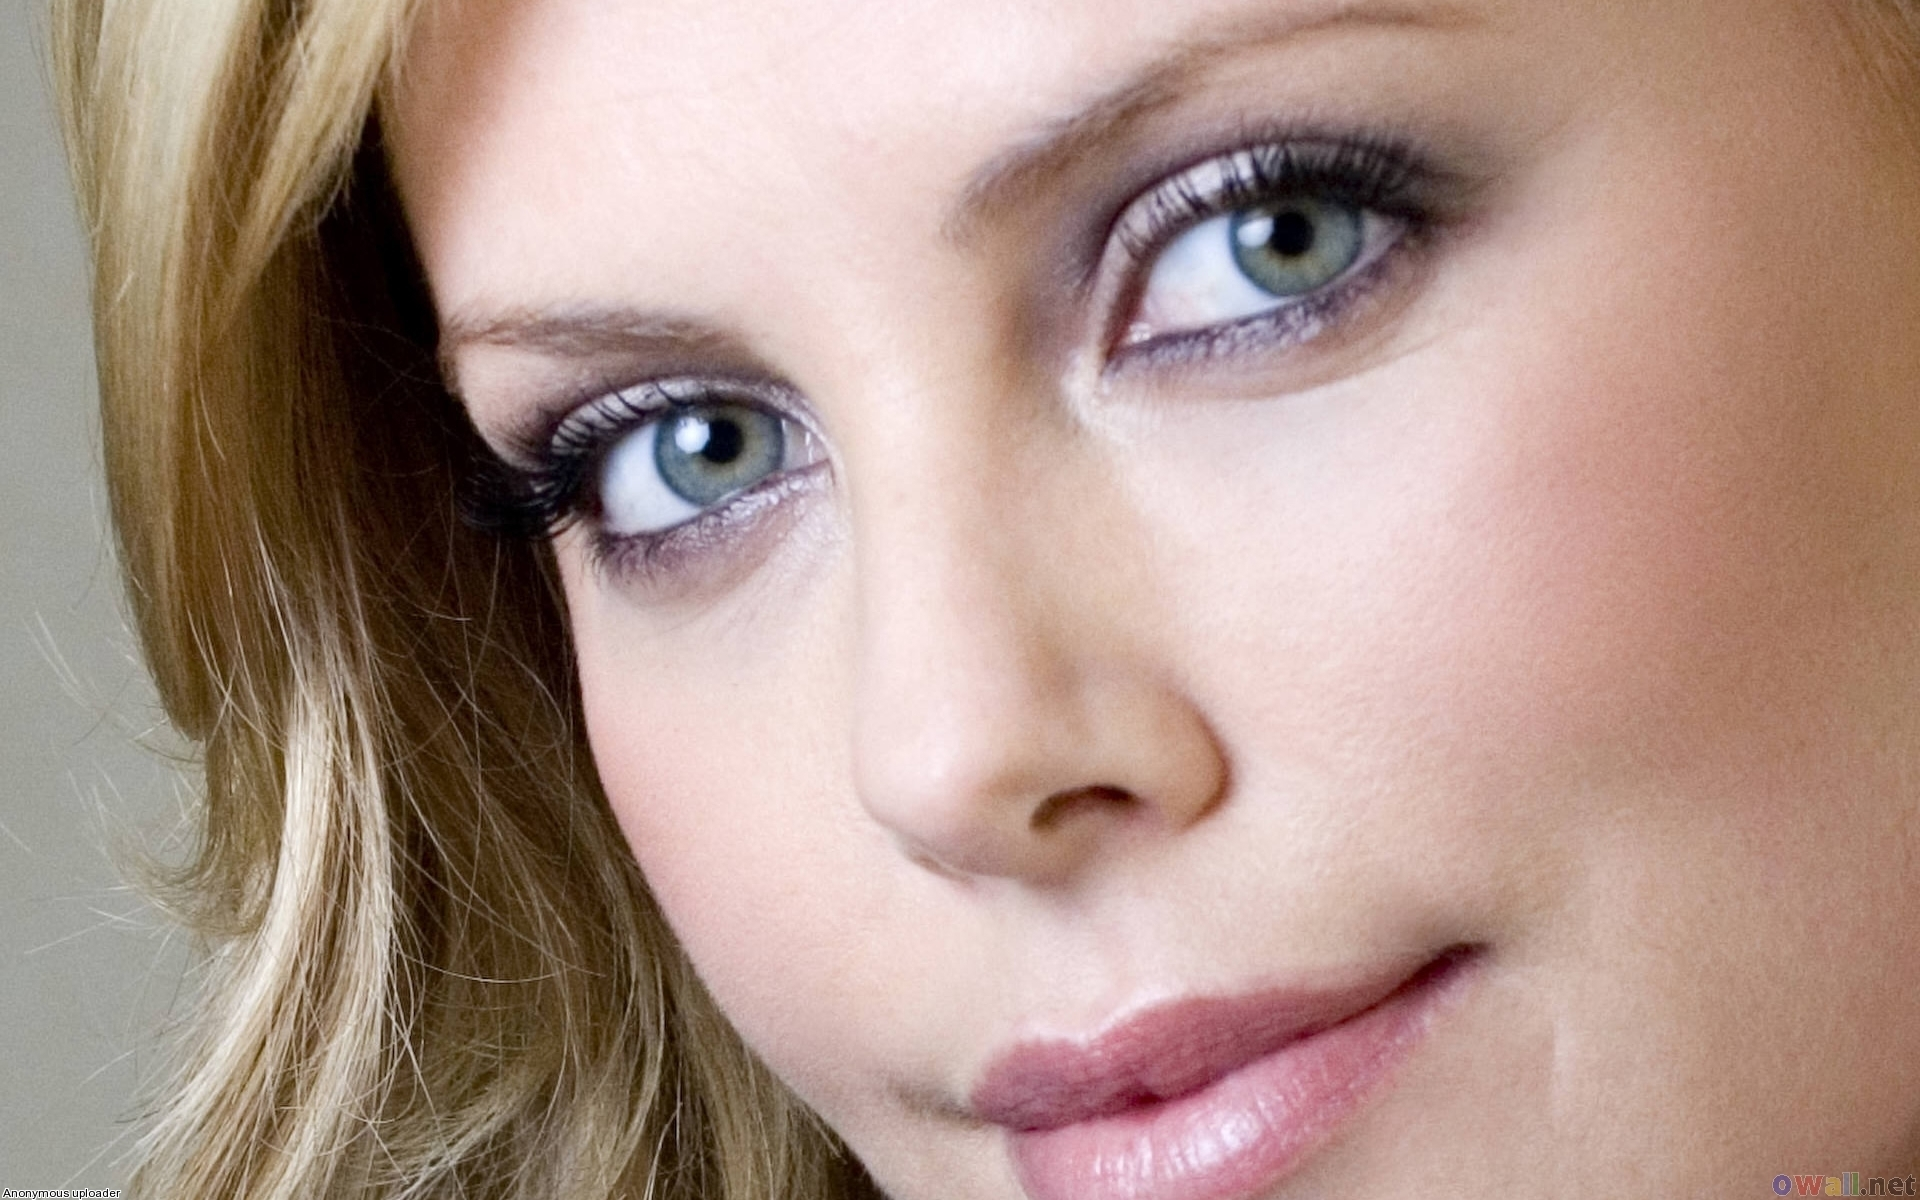 Charlize Theron eyes pics